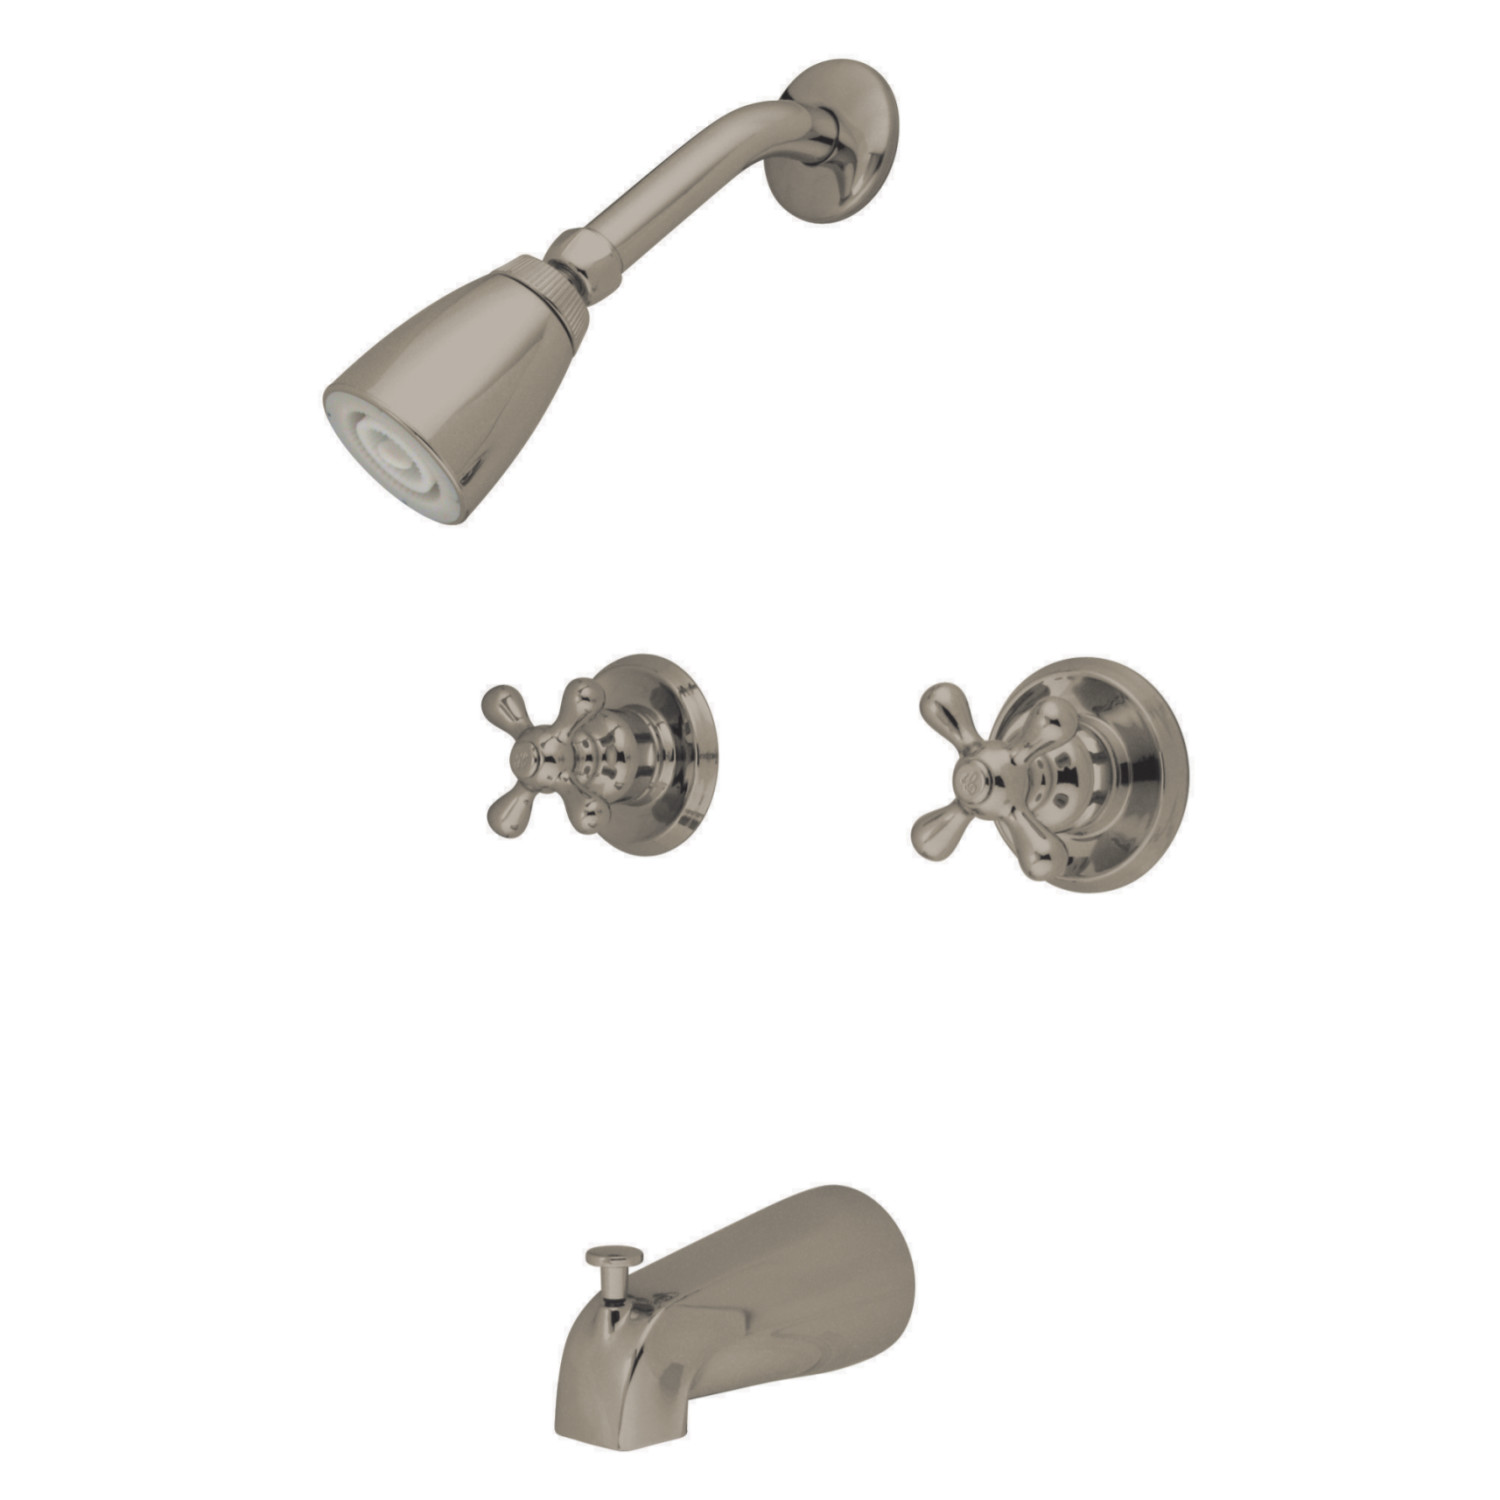 Elements Of Design Eb248ax Twin Handle Tub Shower Faucet With Decor Cross Handle Brushed Nickel